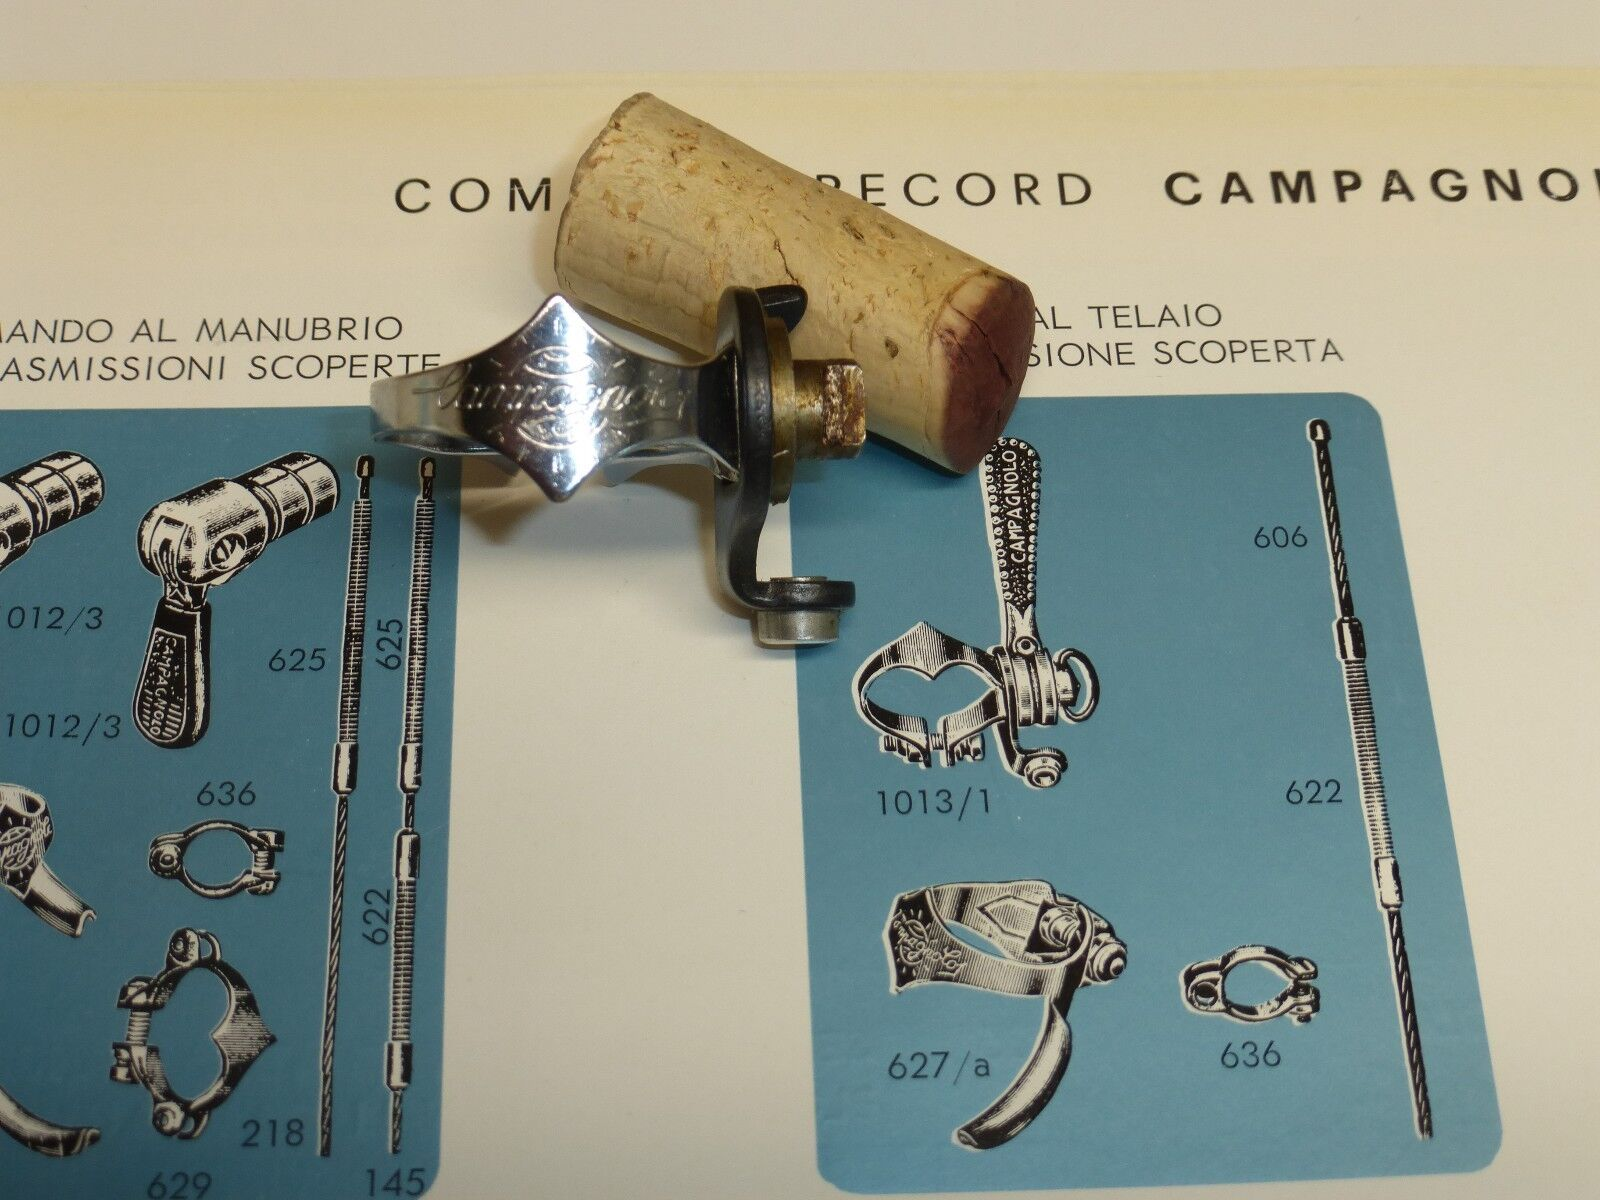 Rare Vintage - NOS  - Campagnolo RIGHT Side Only -  Control Clamp Only  for your style of play at the cheapest prices